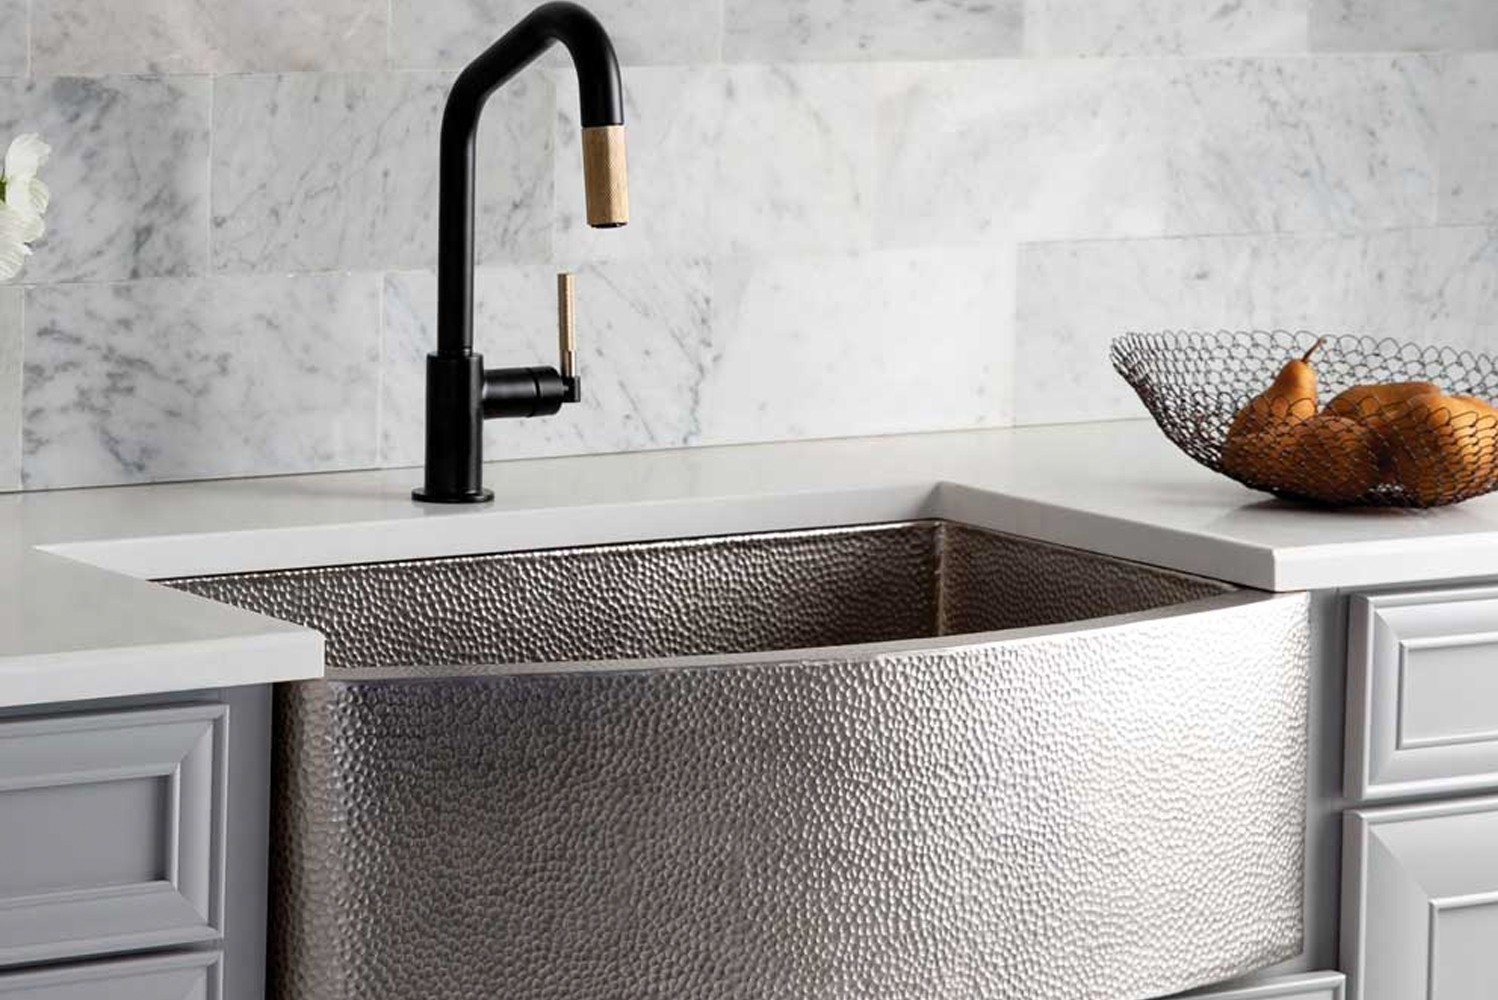 Introducing the new Rhapsody sink from Native Trails, said to be an artistic twist on the traditional farmhouse style.